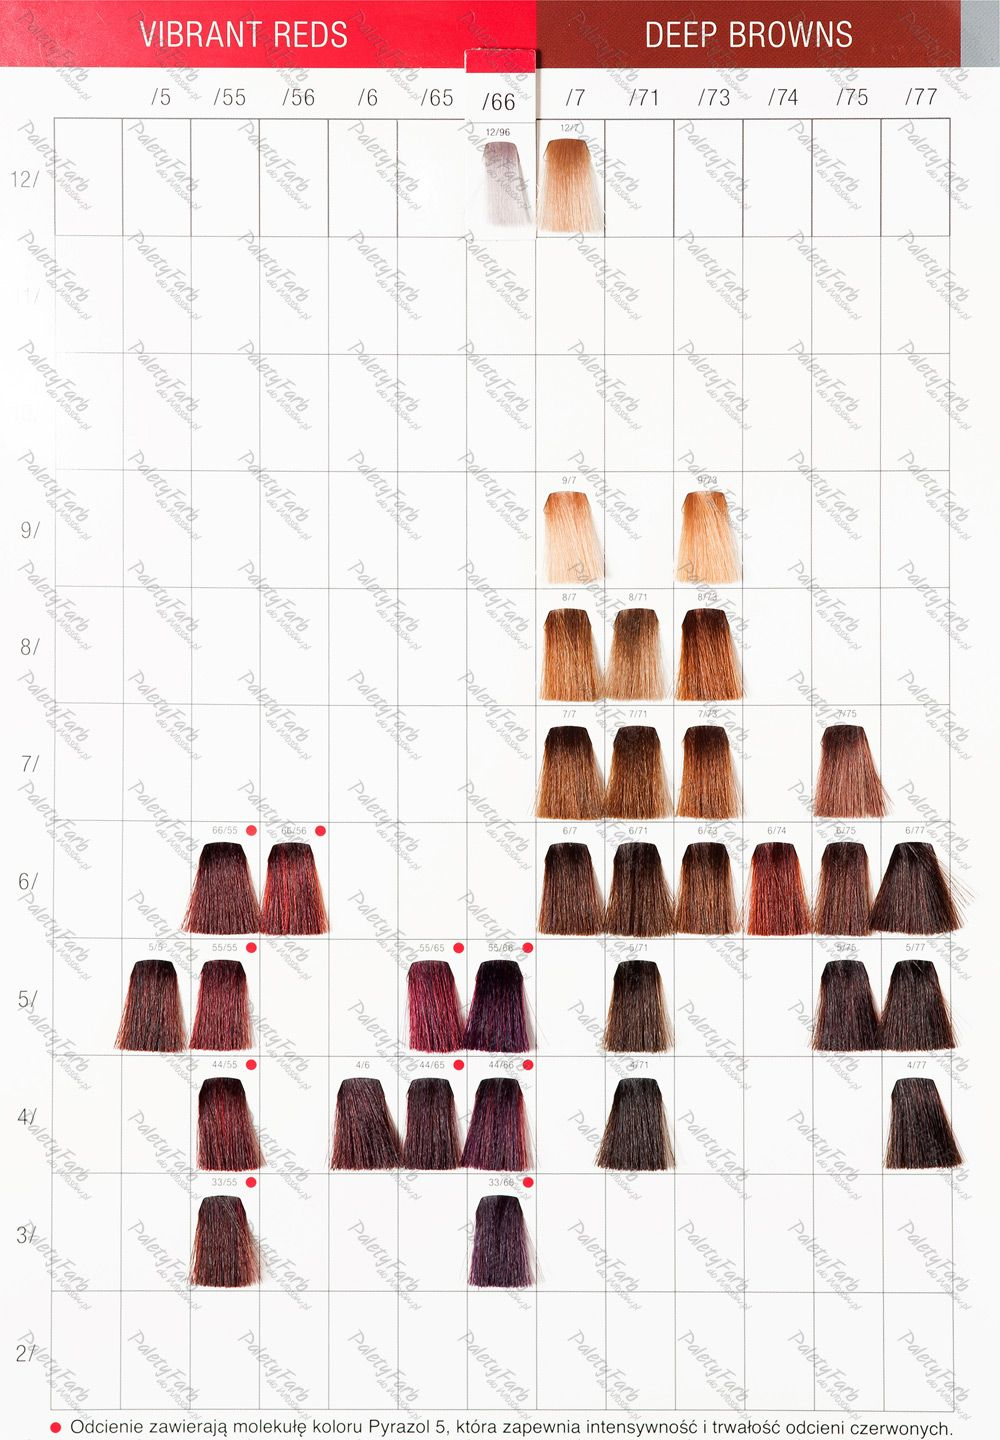 Wella color touch demi permanent hair color color swatch charts wella color touch demi permanent hair color color swatch charts hair pinterest demi permanent permanent hair color and hair coloring nvjuhfo Gallery